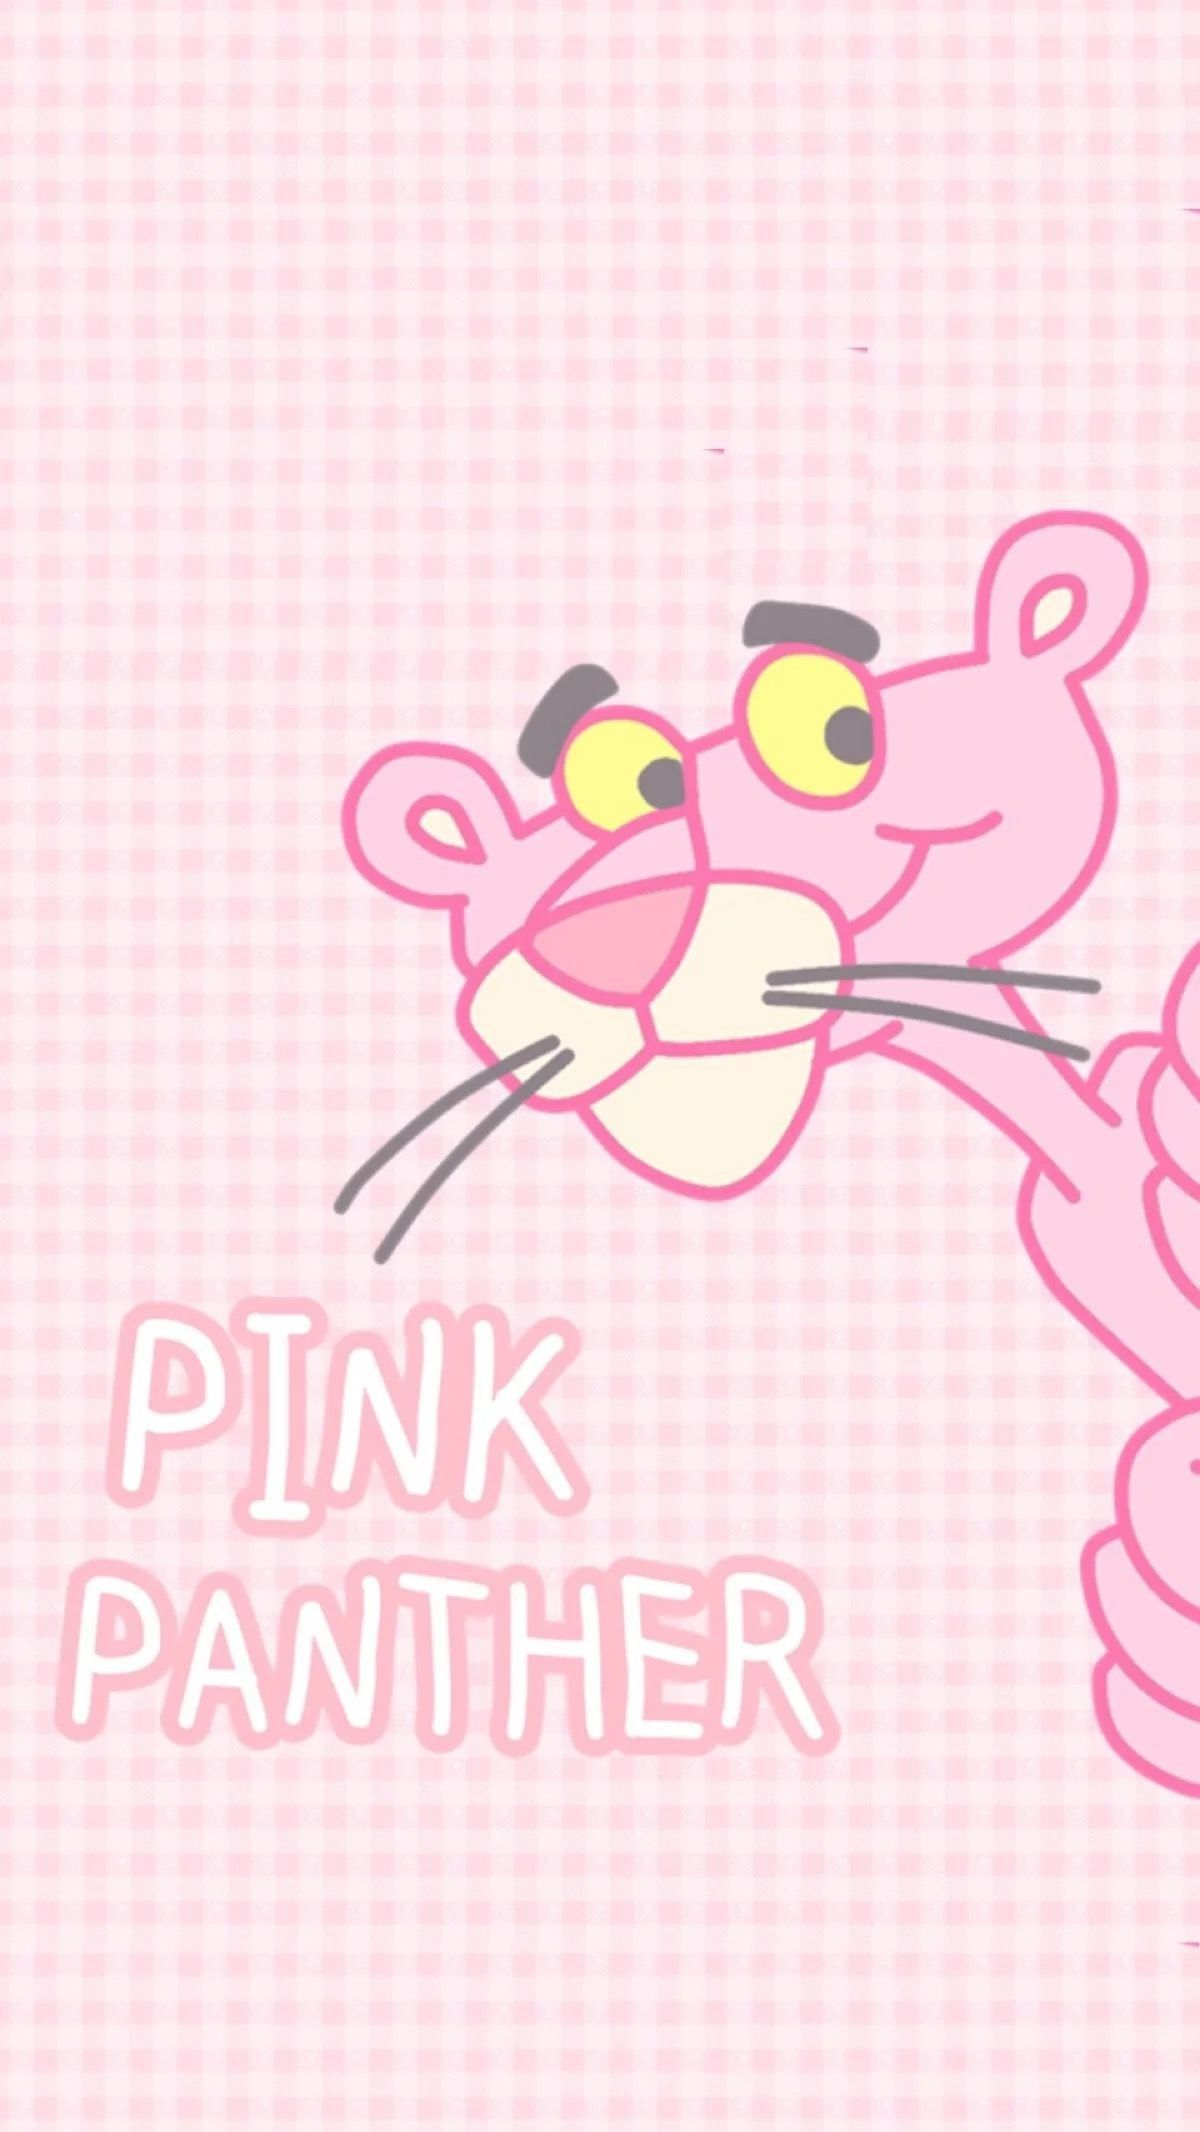 Pink Panther Wallpaper 32 Images Pink Panther Cartoon Pink Panthers Pink Panter